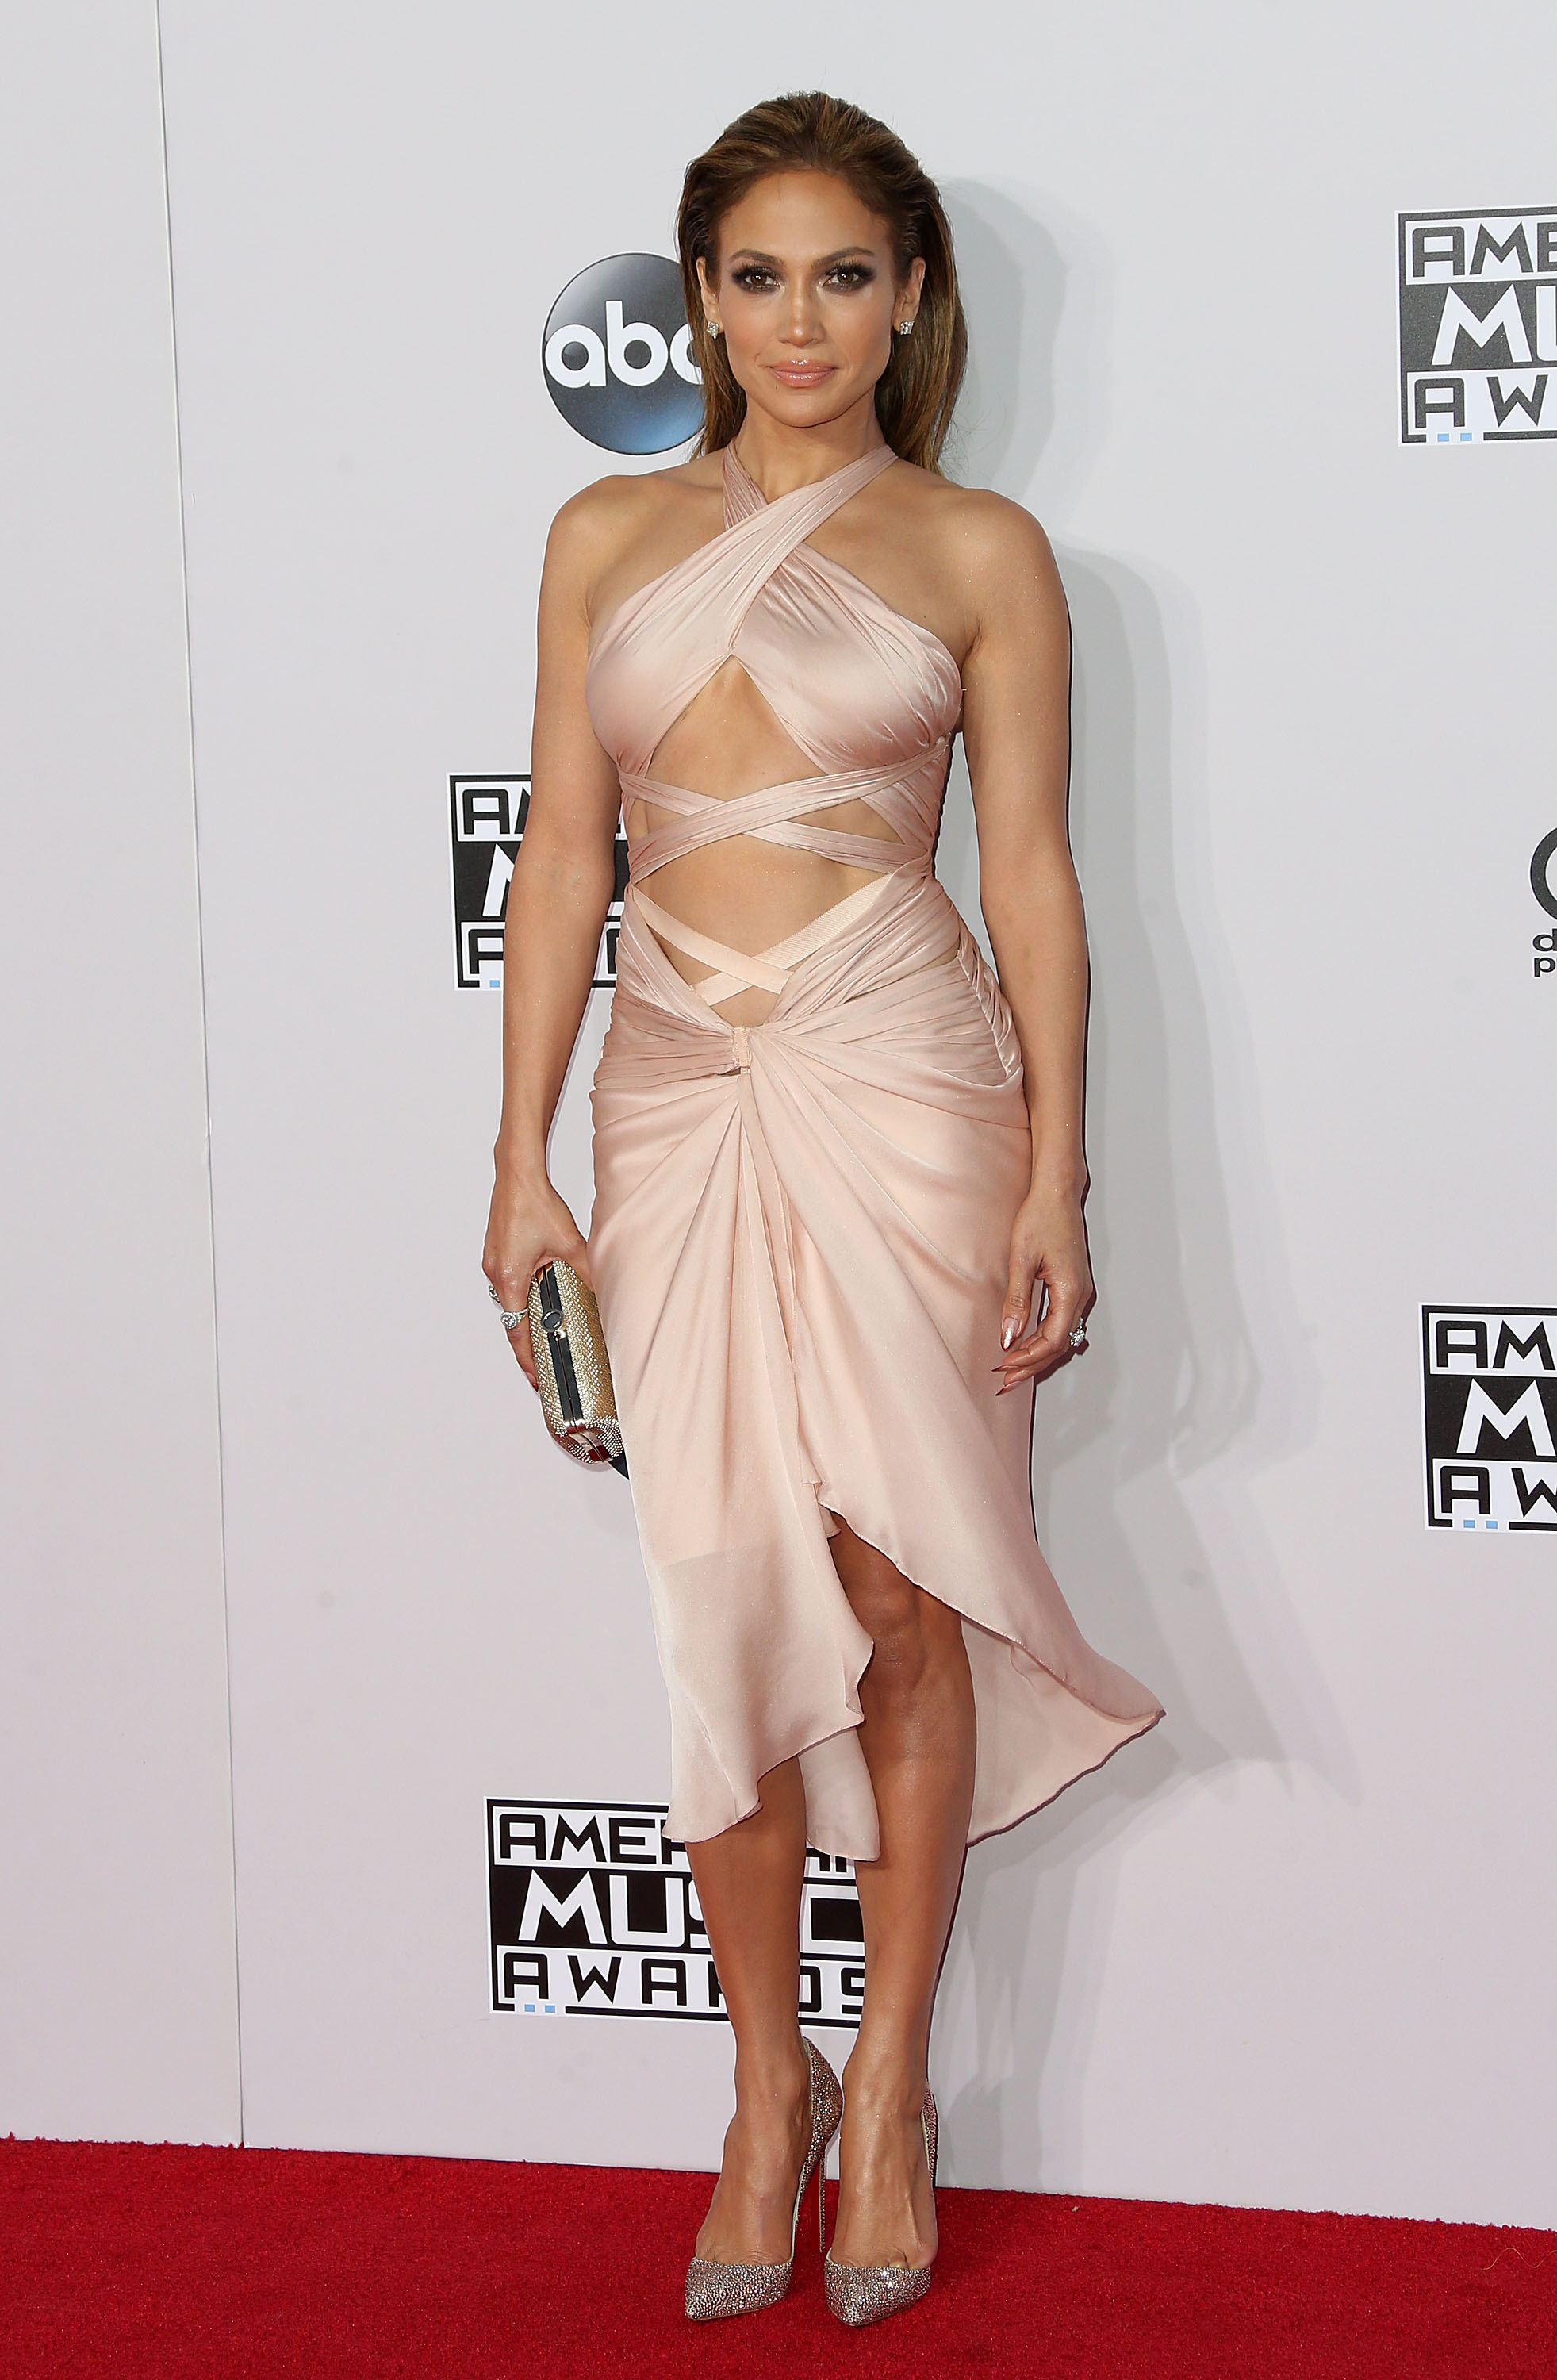 American Music Awards' top 10 fashion misses [GALLERY]